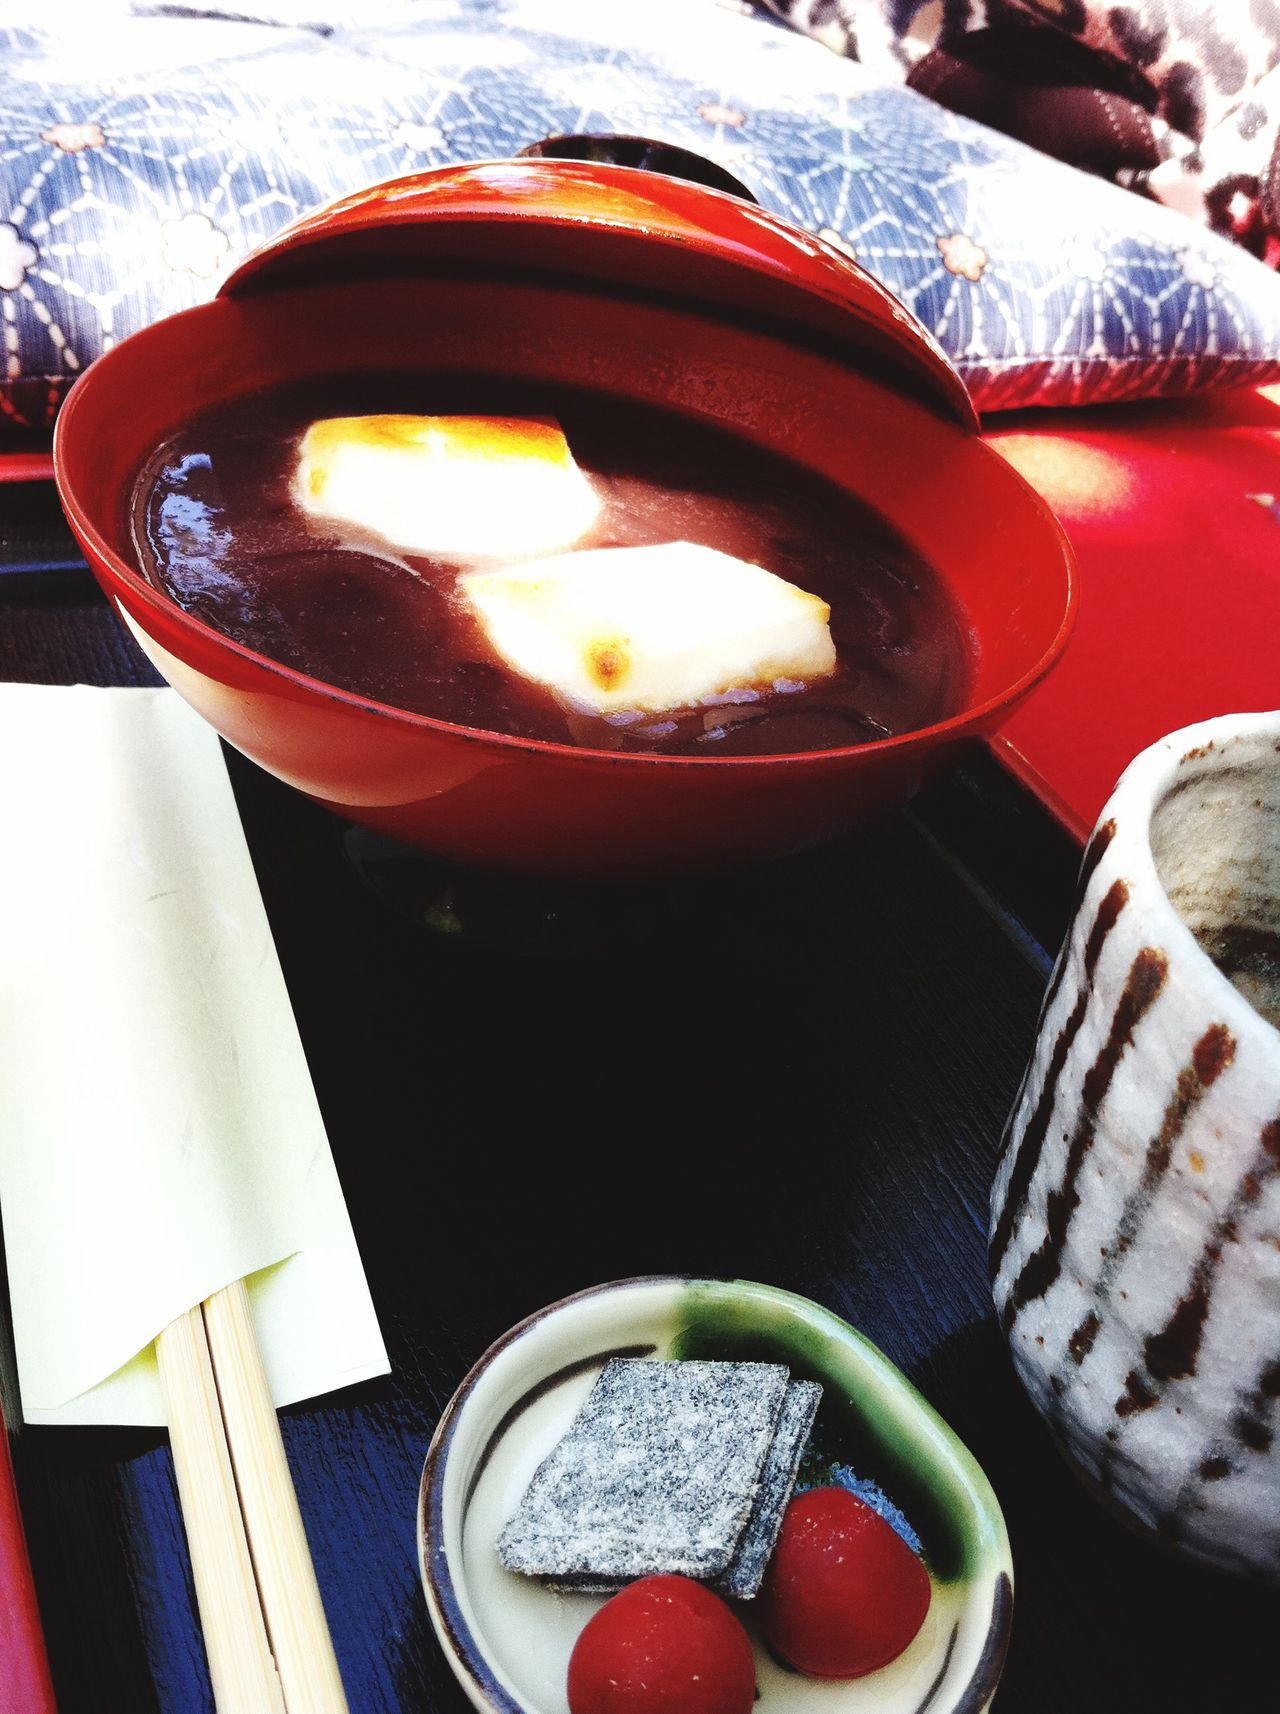 京都府 旅行 茶屋 Japan Kyouto Traveling Japanese Cafe Food Japanese Food Sweet Red-bean Soup With Mochi Oshiruko